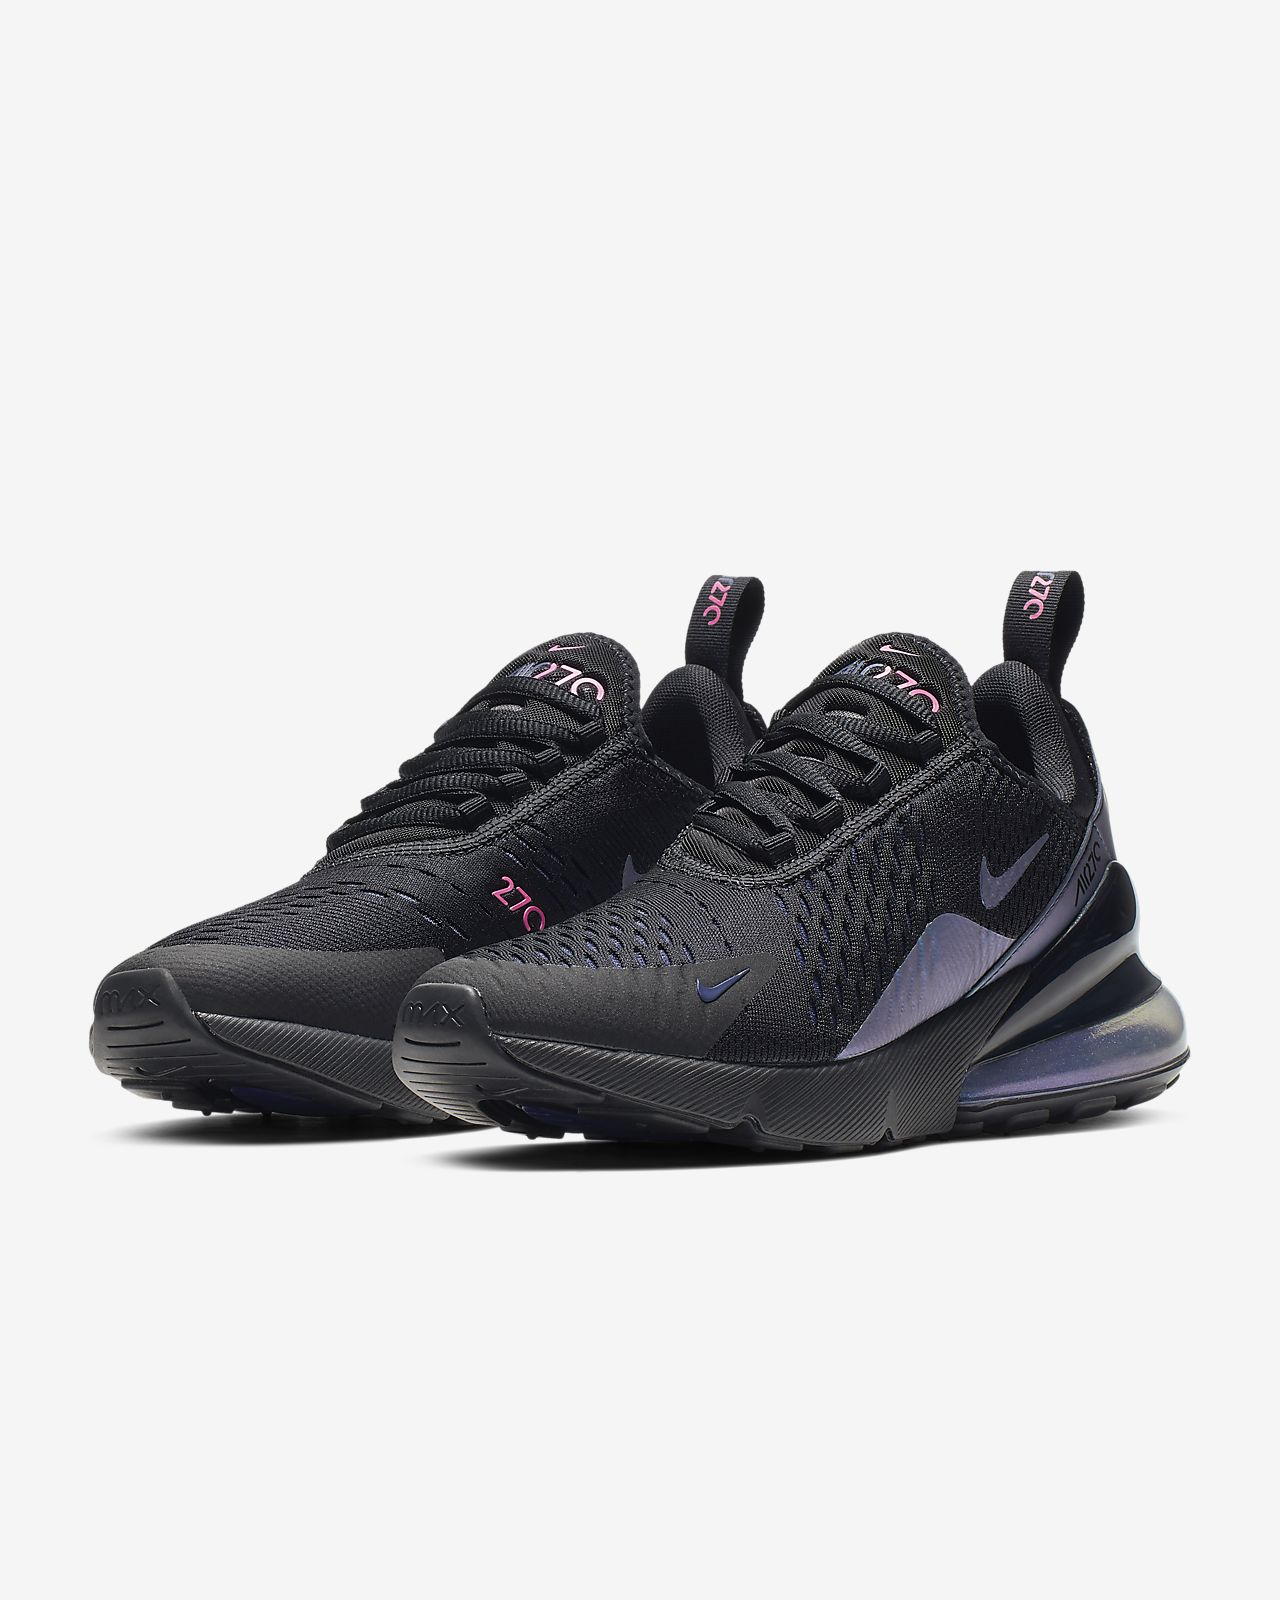 wholesale dealer 2891a 19ac5 Sko för kvinnor. Nike Air Max 270